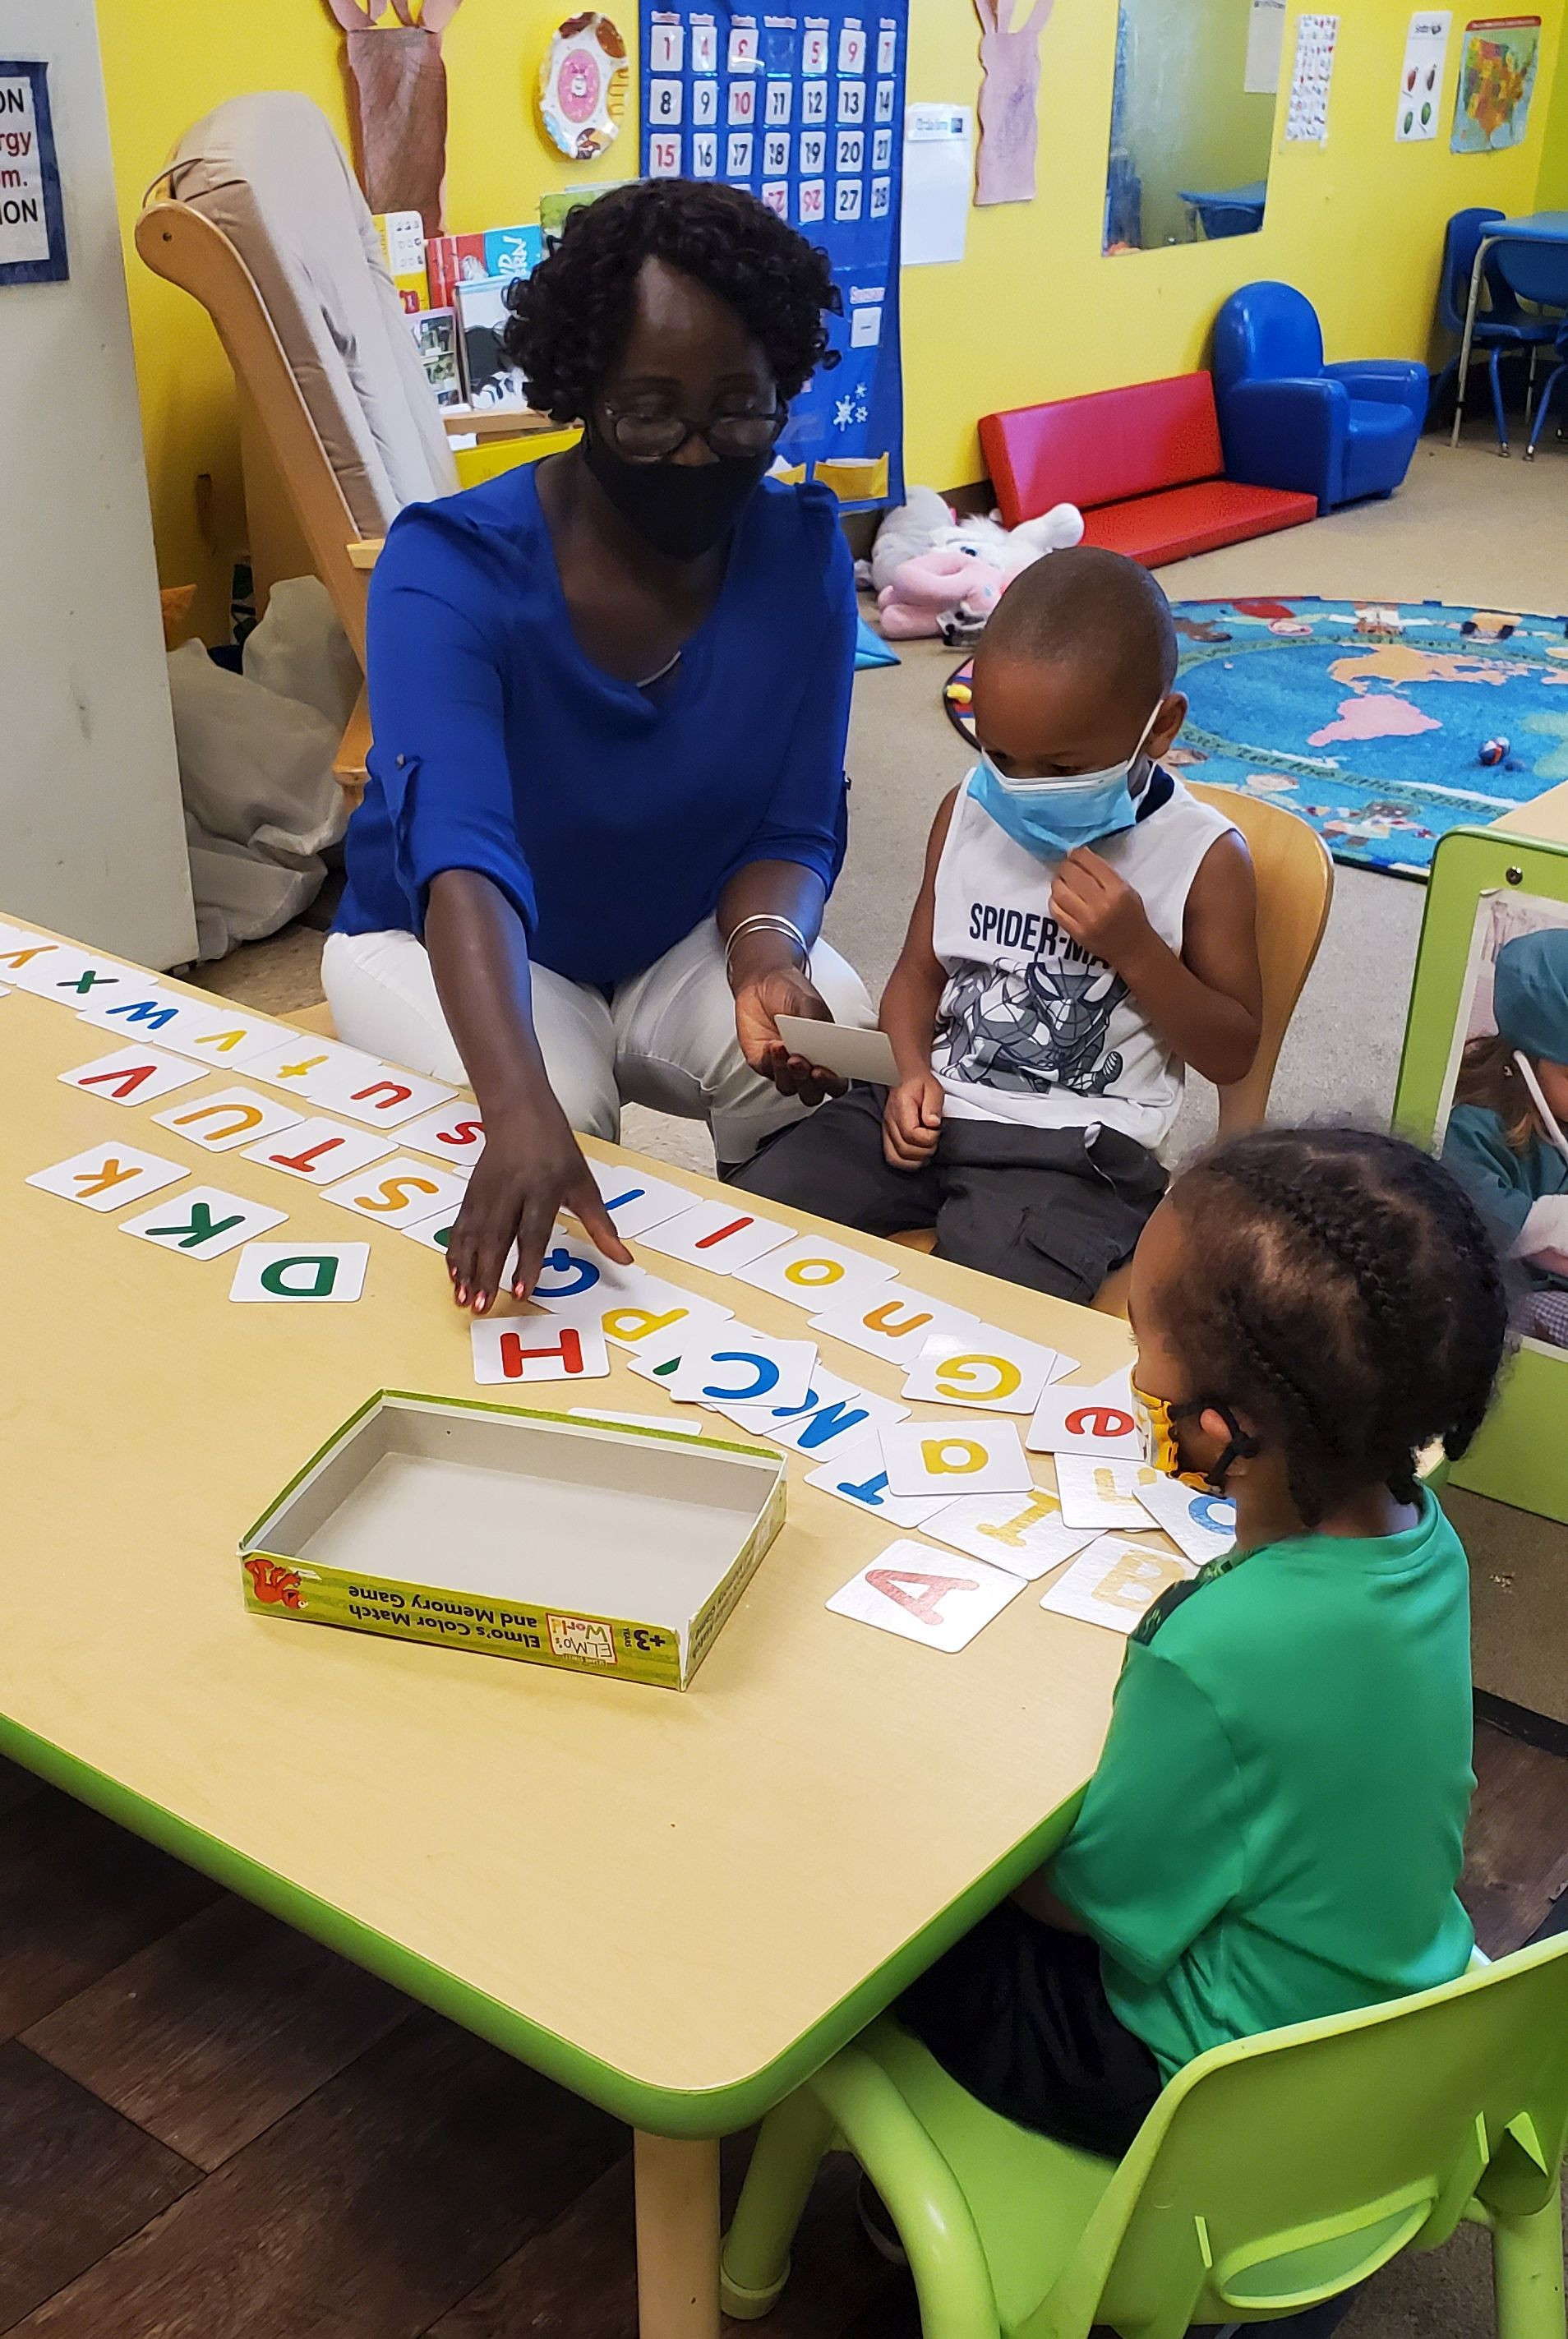 A teacher is sitting at a table with two small children and shows them flashcards with letters of the alphabet.